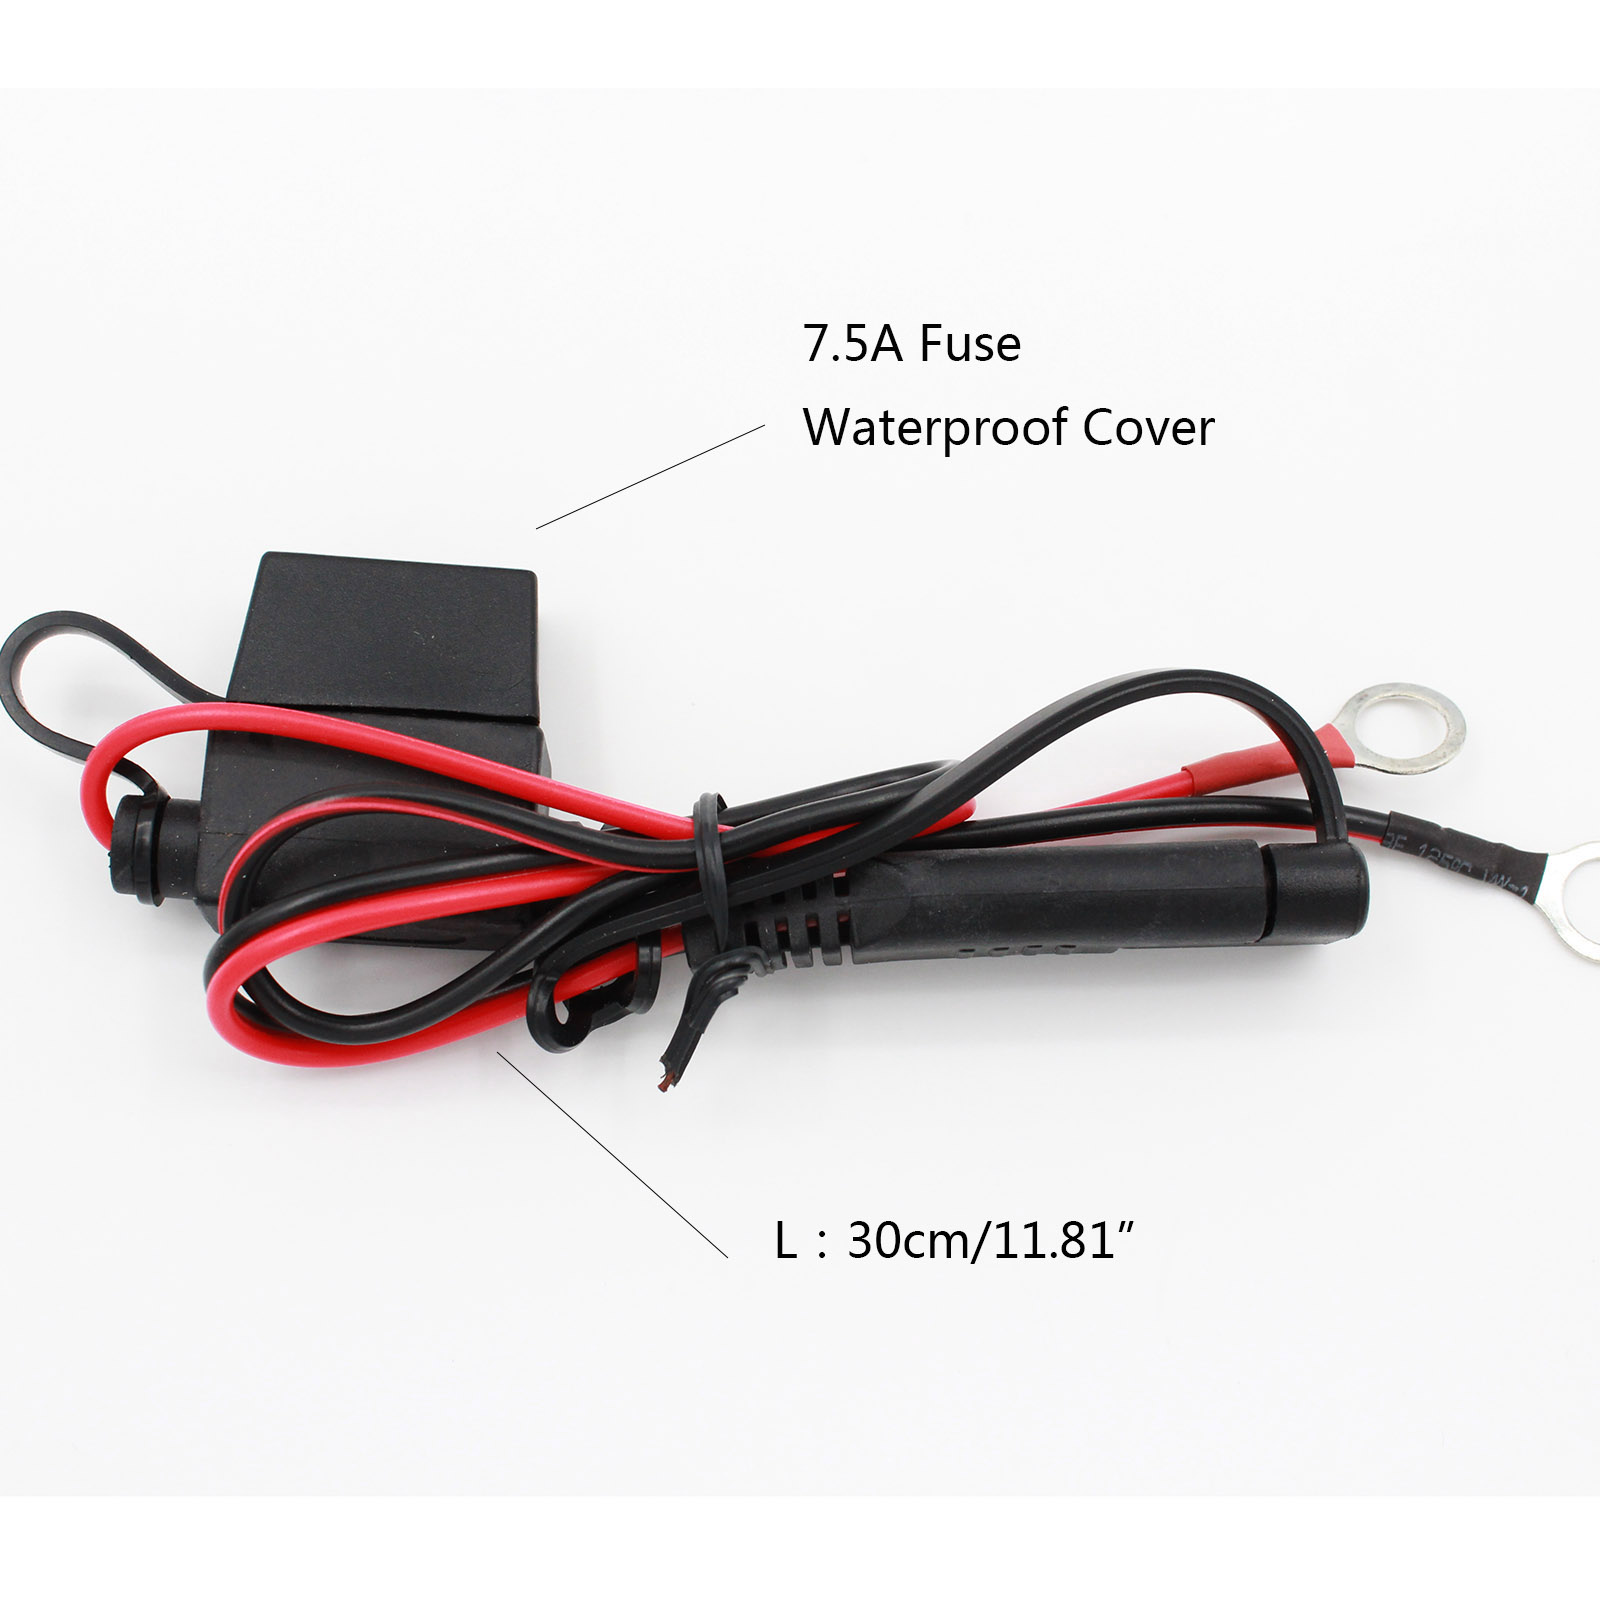 7.5A Fuse 5 Pcs Battery Charger Cables Ring Terminal Harness SAE 2 Pin  Quick Disconnect Plug Quick Connect Wires on Aliexpress.com | Alibaba Group